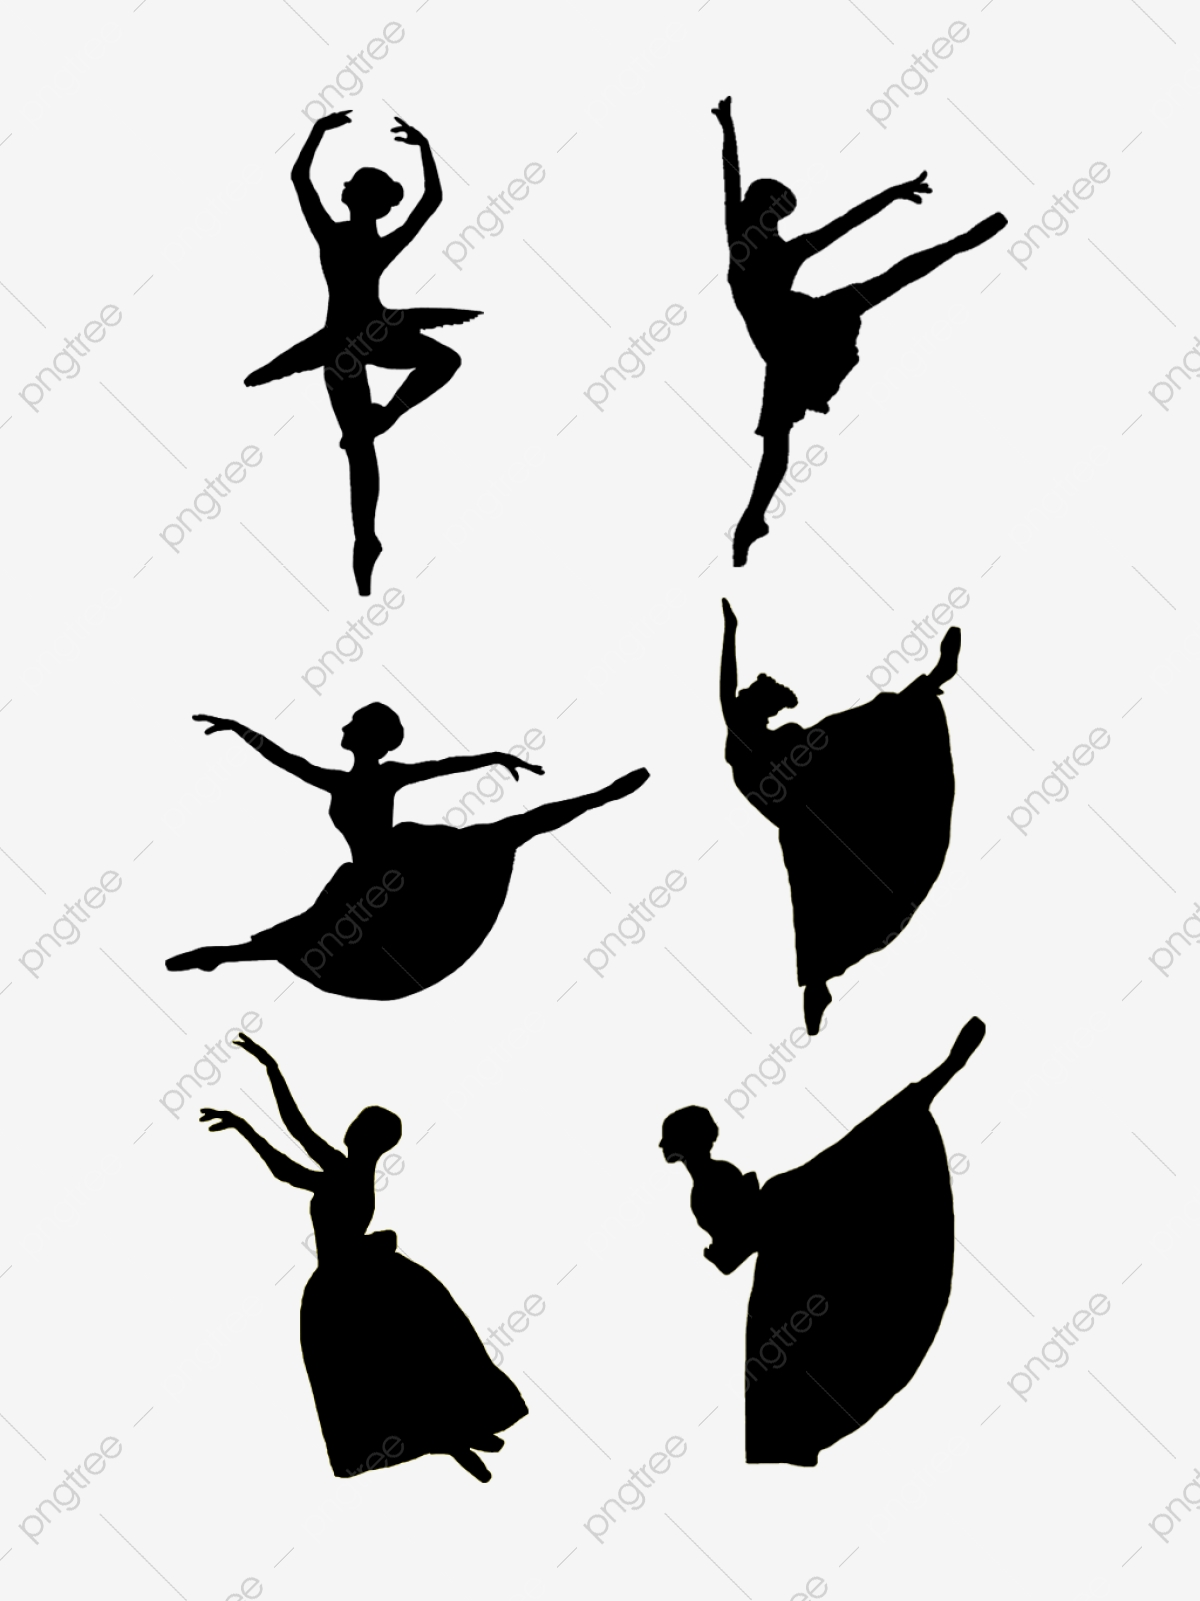 Thai Dancer Cliparts, Stock Vector And Royalty Free Thai Dancer  Illustrations